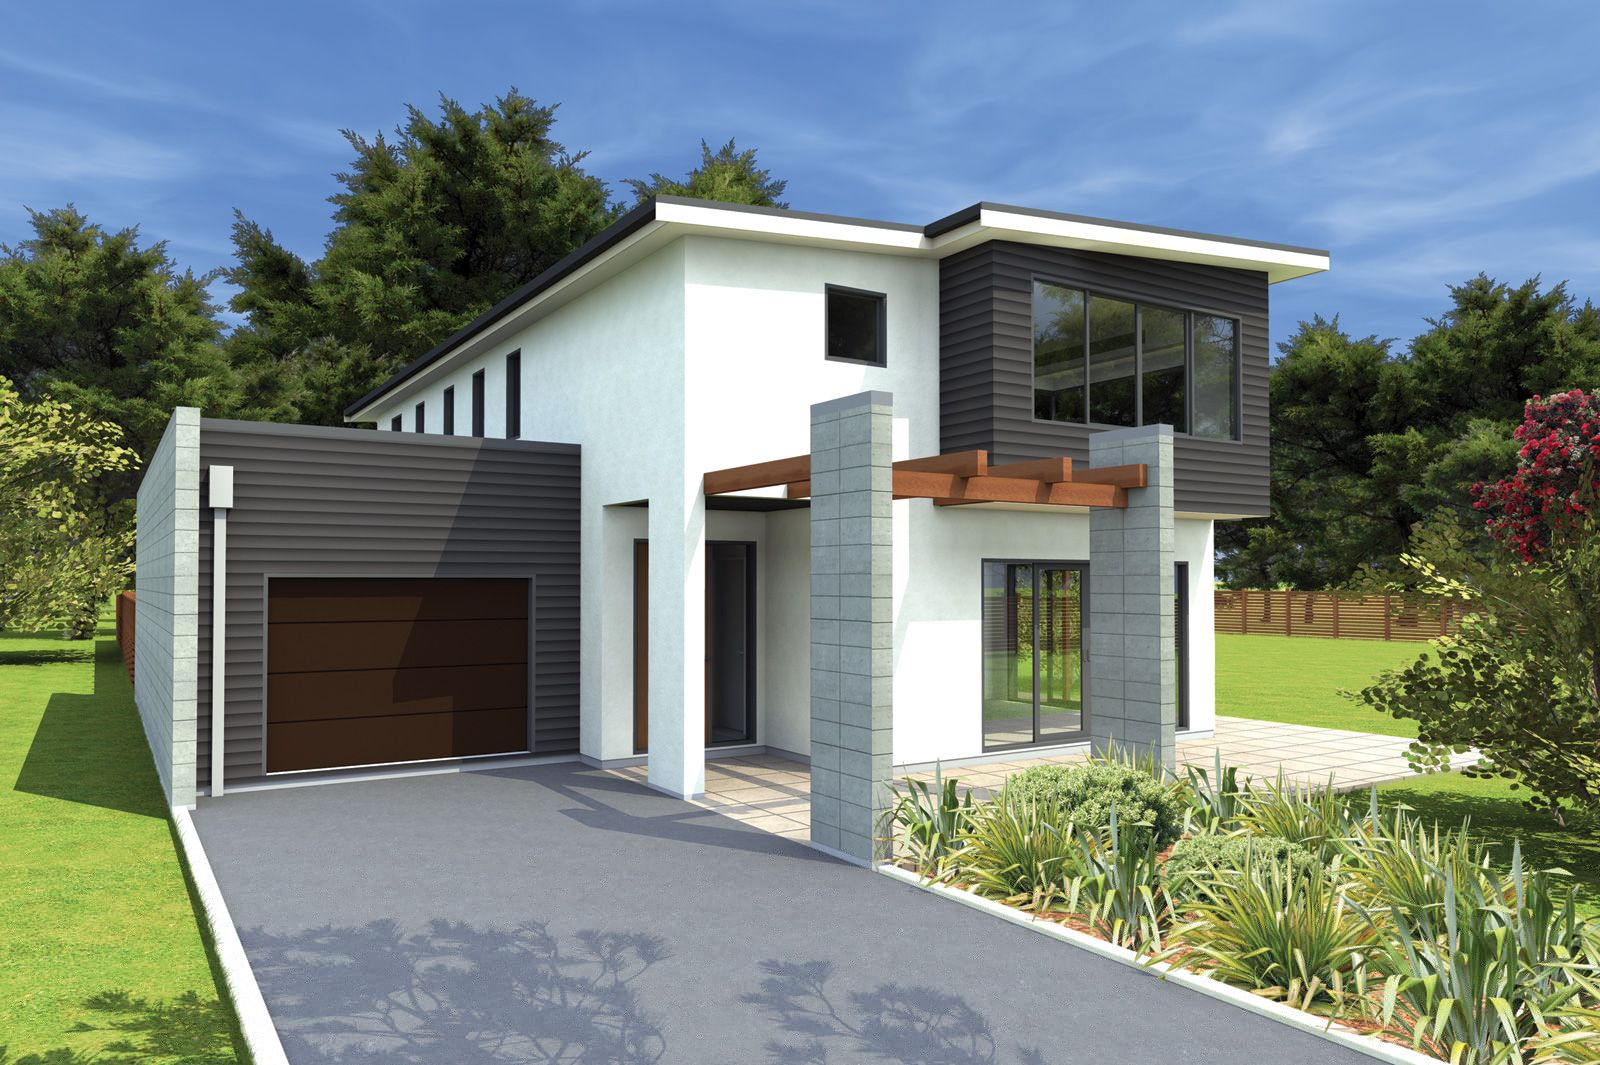 The Best Small House Design With Garage